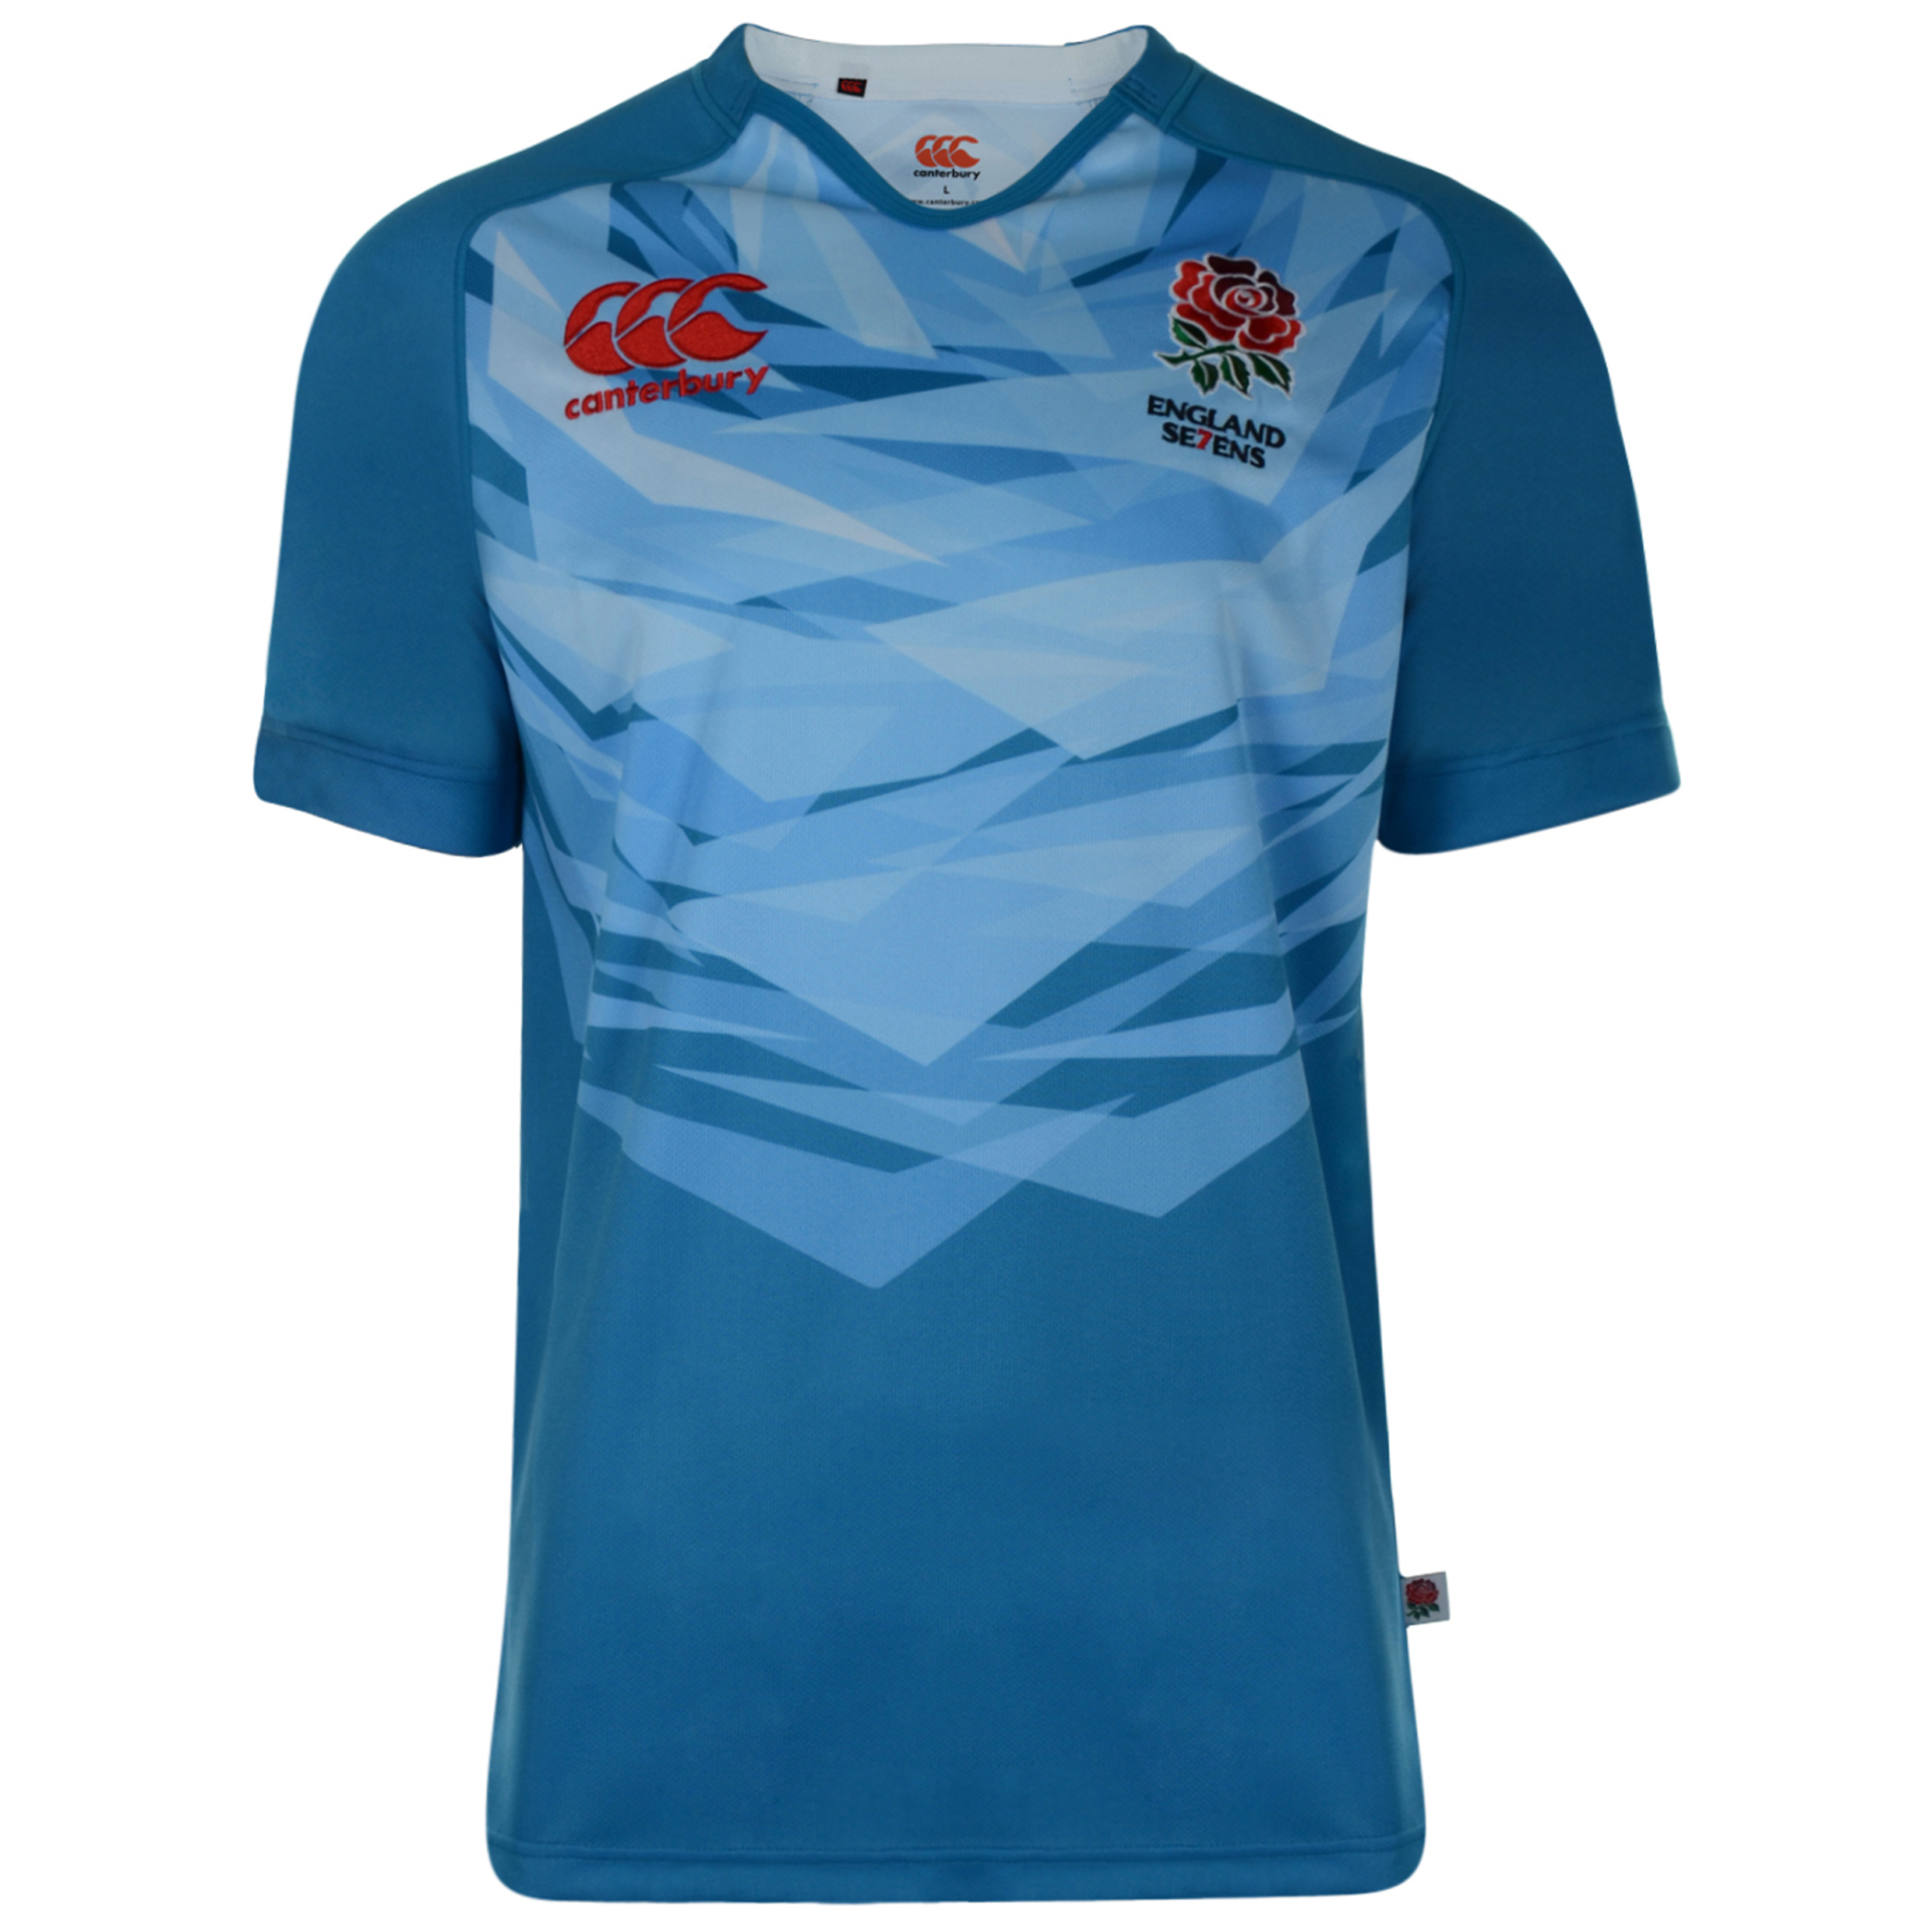 England Alternate 7'S Rugby Pro Shirt 2012/13 S/S - Kids